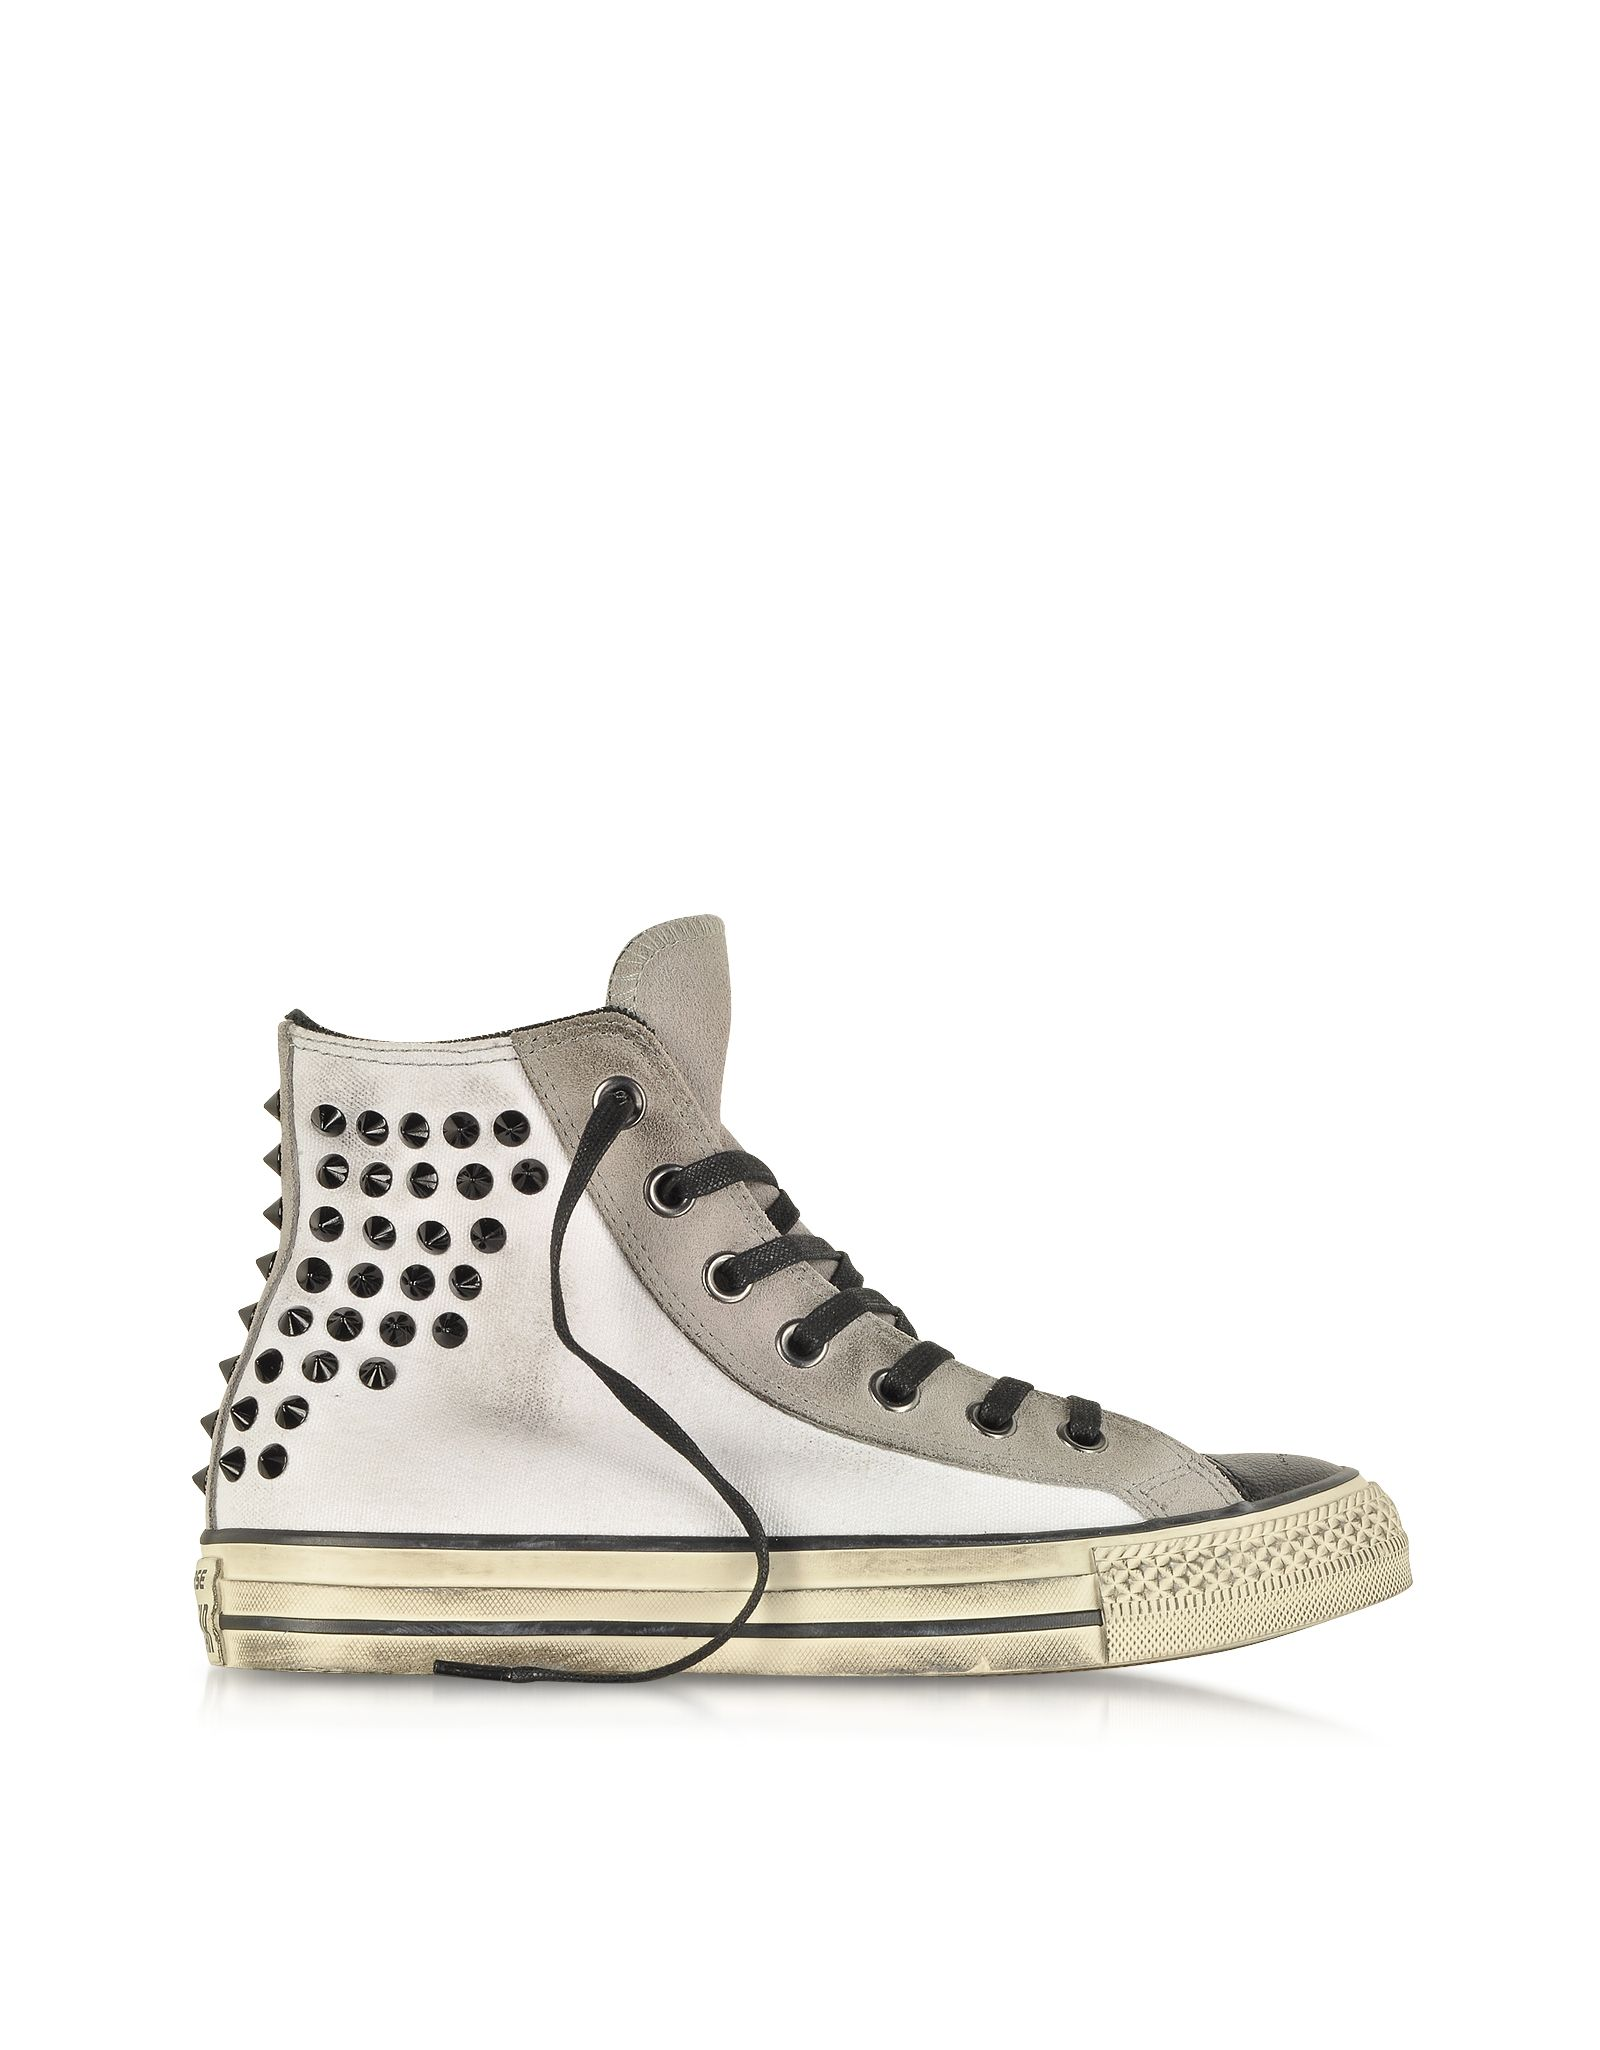 Converse Limited Edition All Star HI Textile and Suede Studded ...